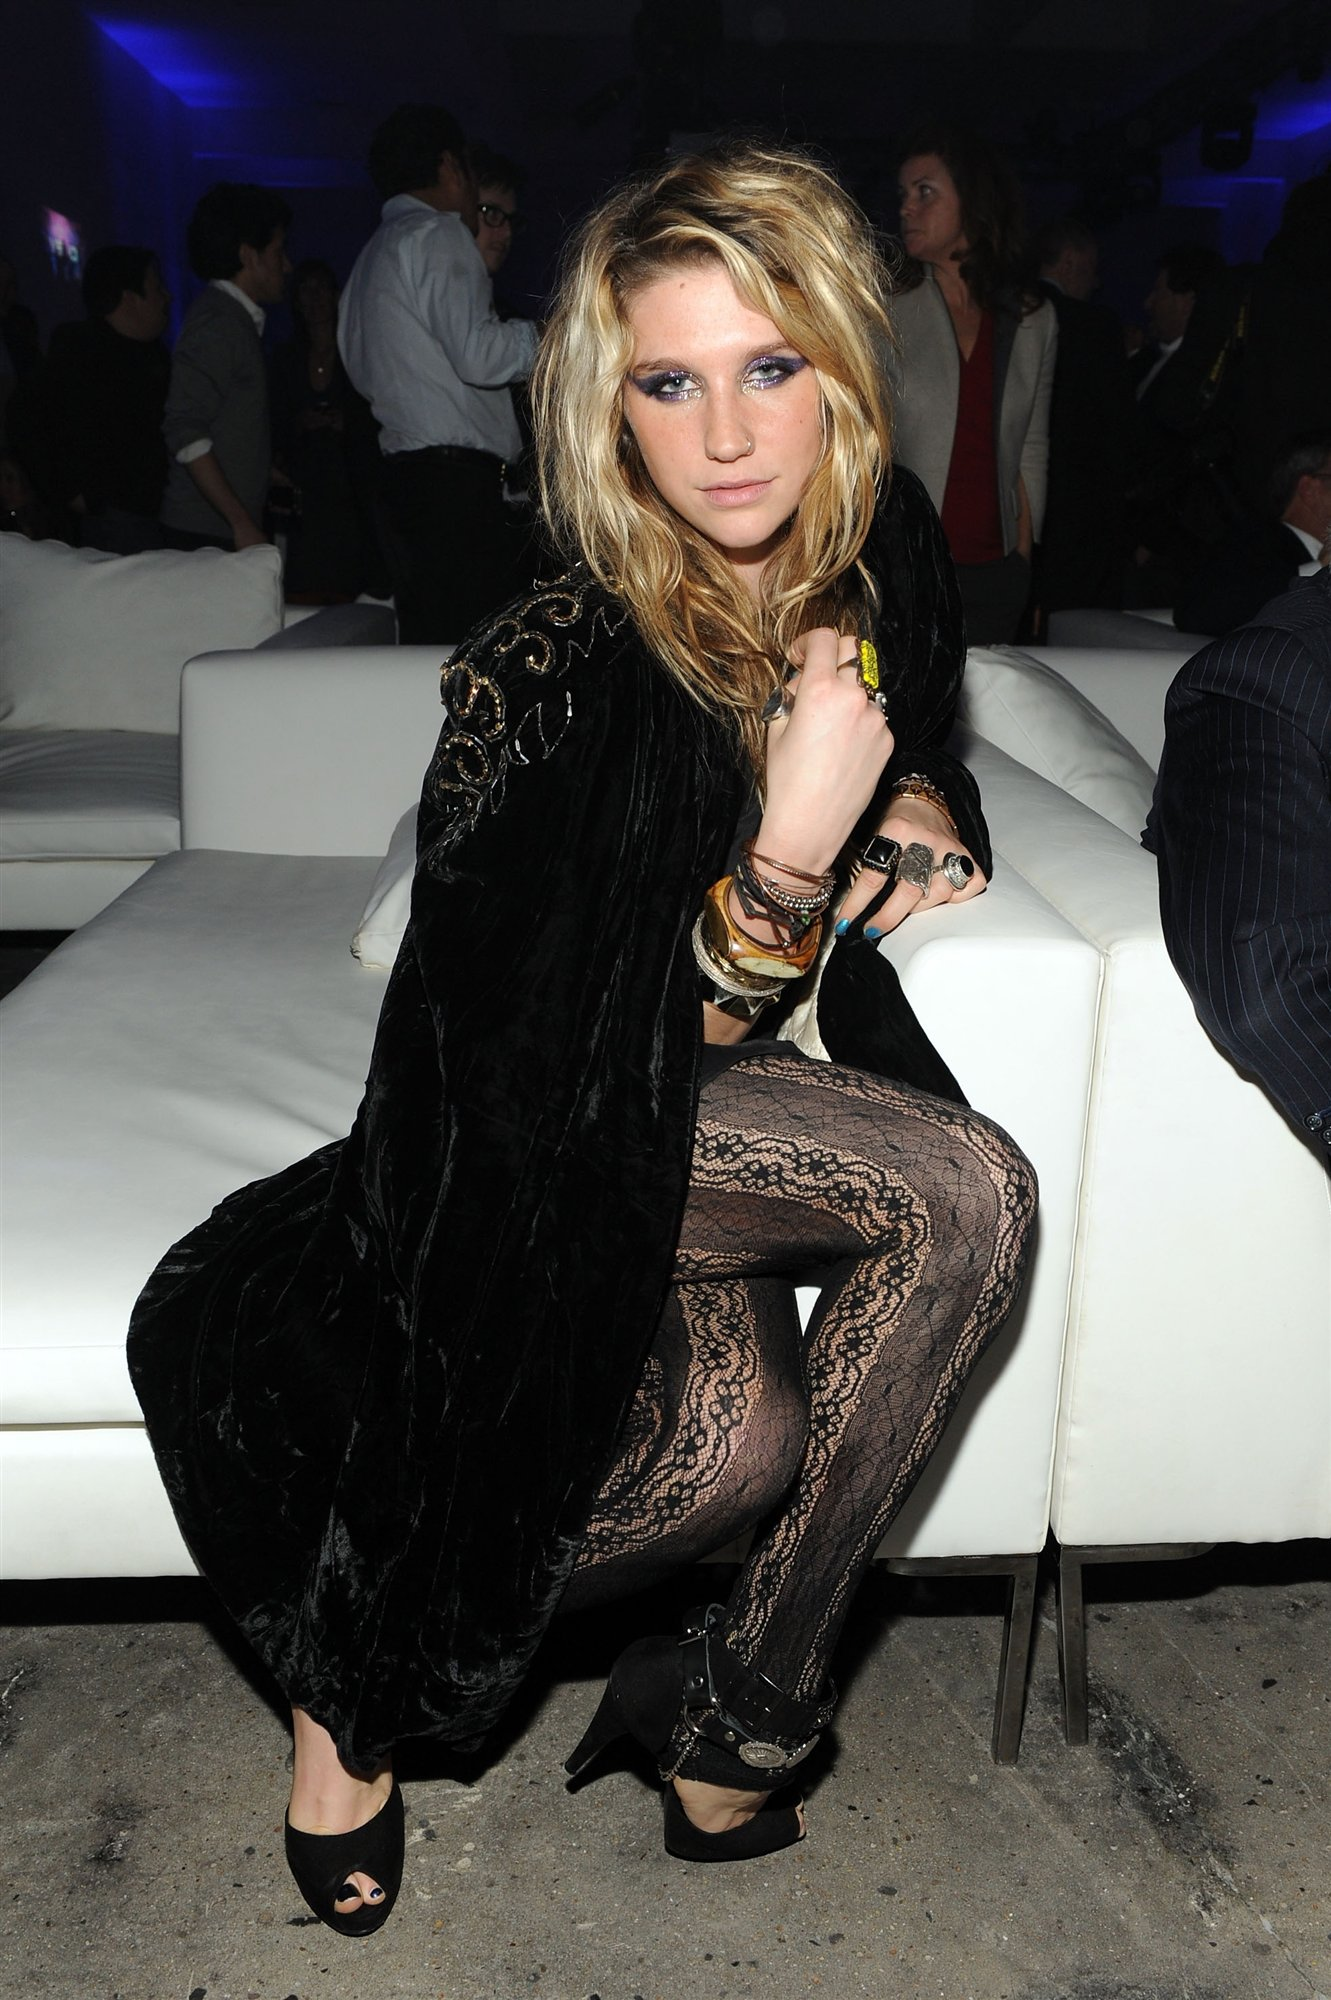 Kesha Nude The Fappening - Page 4 - FappeningGram